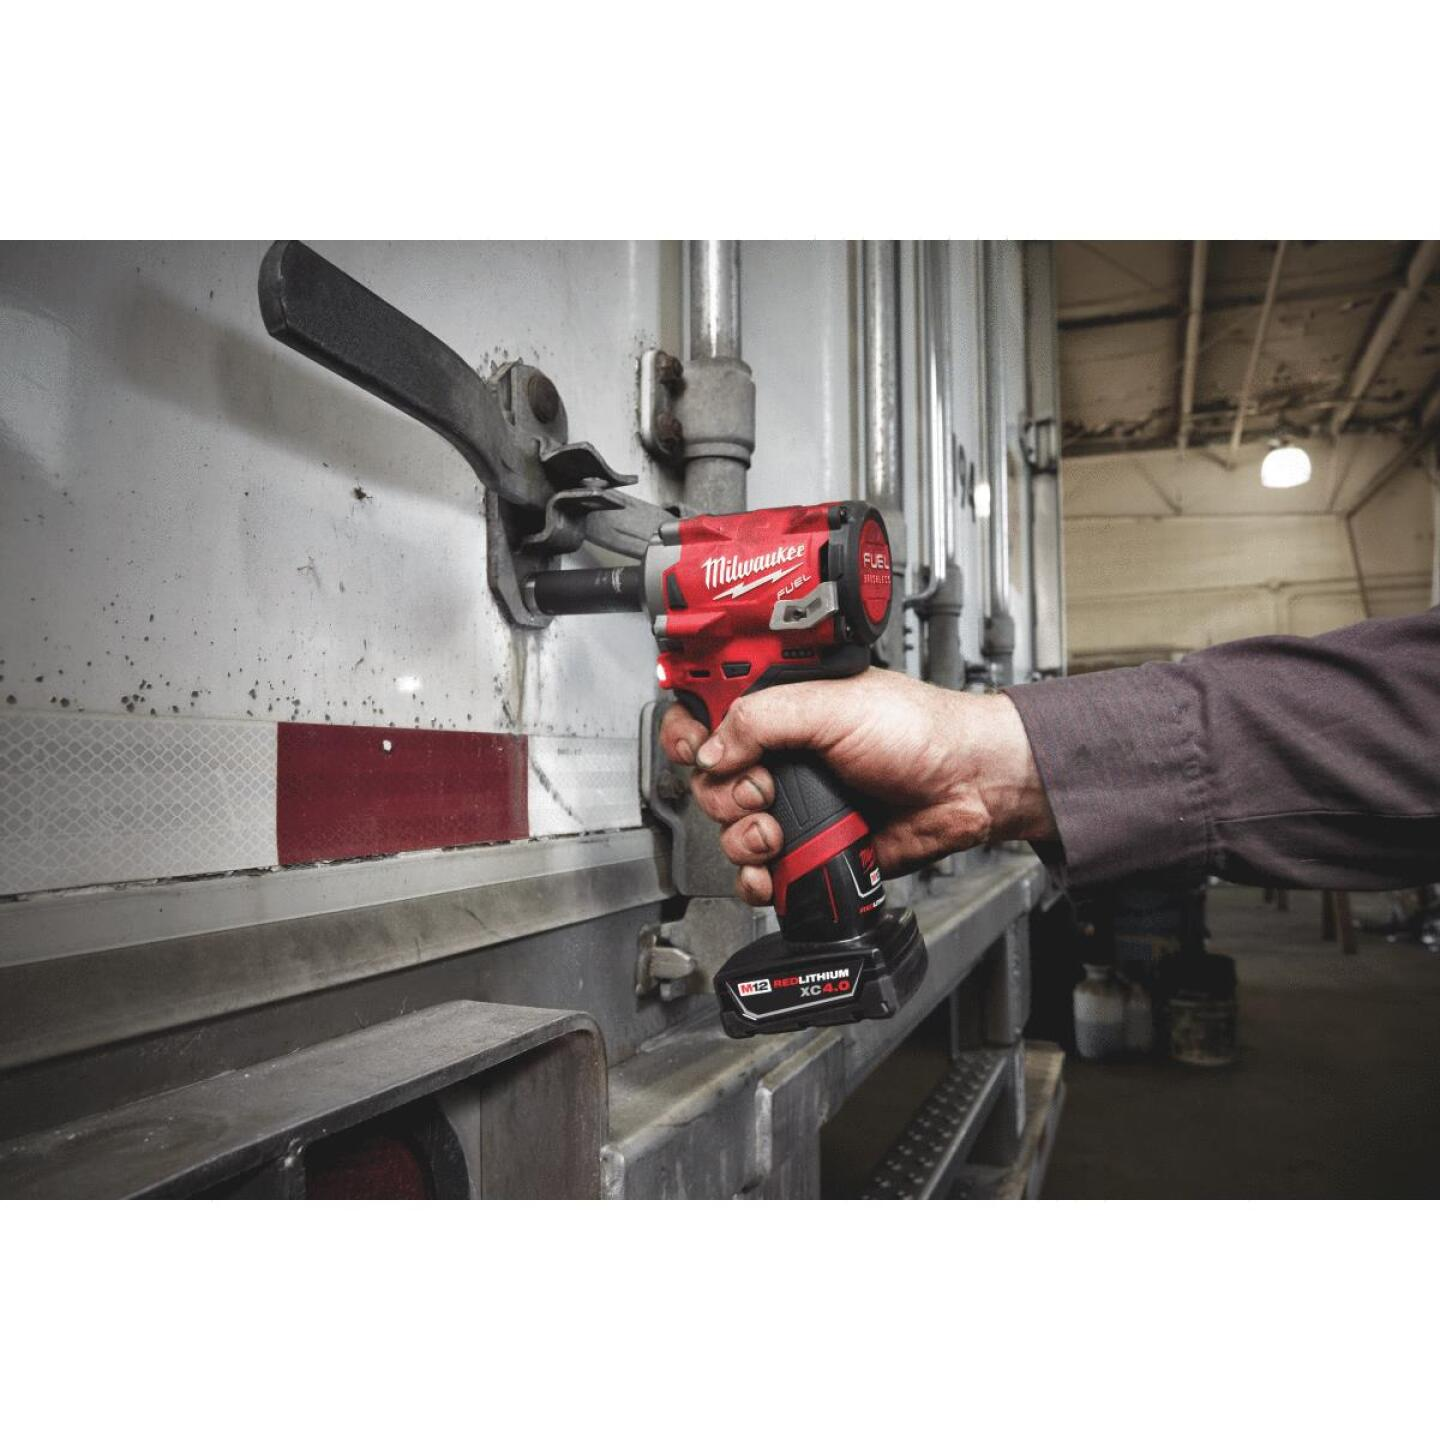 Milwaukee M12 FUEL 12 Volt Lithium-Ion Brushless 1/2 In. Stubby Cordless Impact Wrench (Bare Tool) Image 3